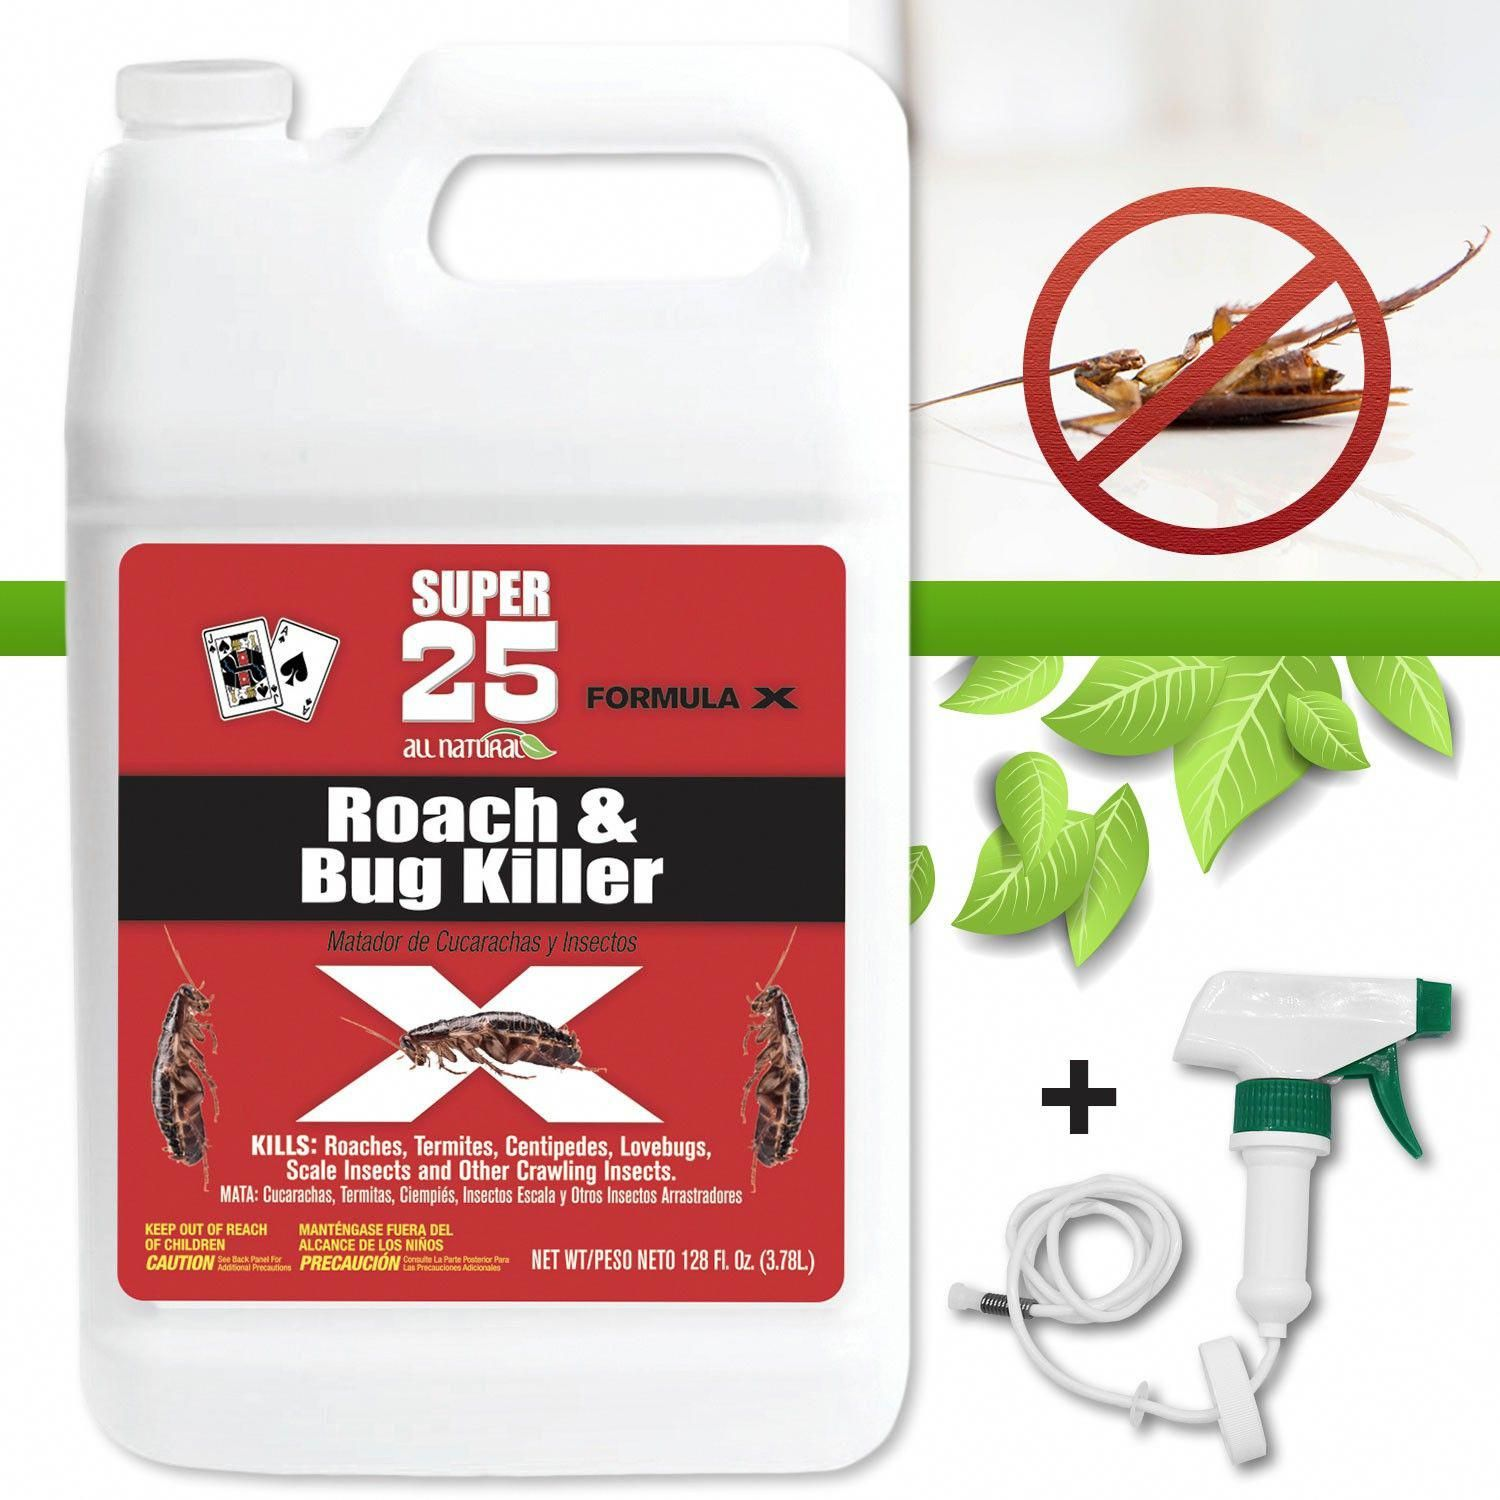 Pin on Pest control solutions